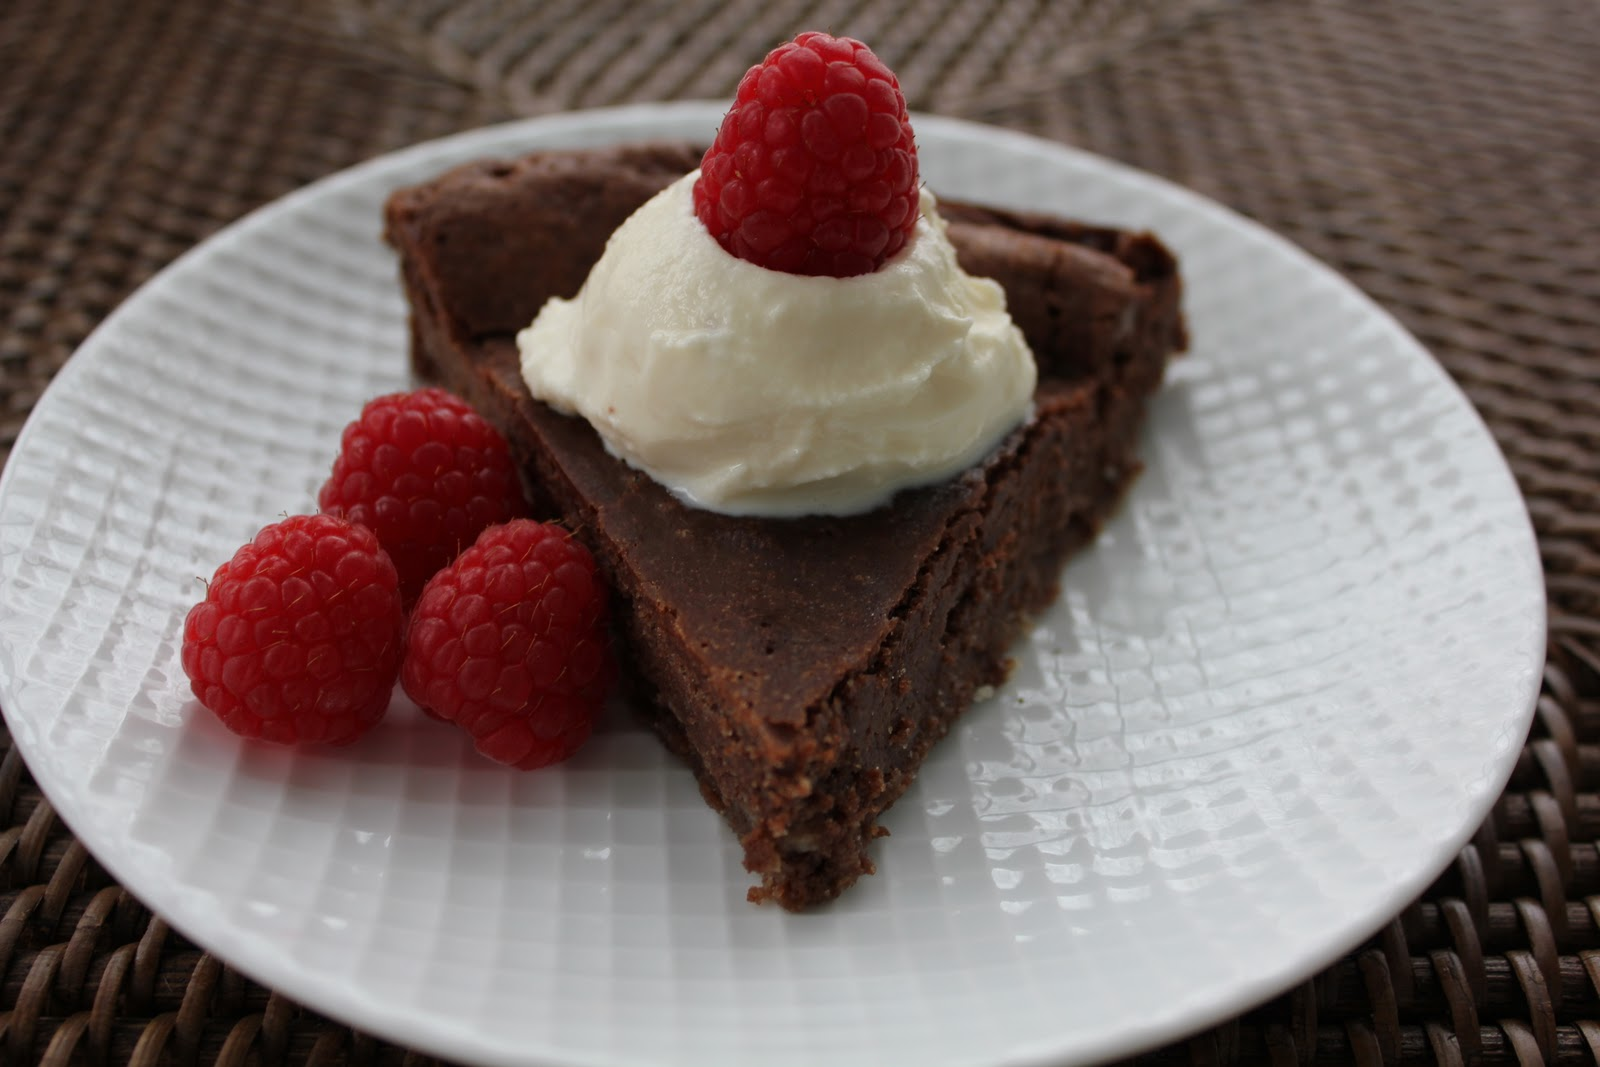 ... Rostang's Double Chocolate Mousse Cake …French Fridays with Dorie